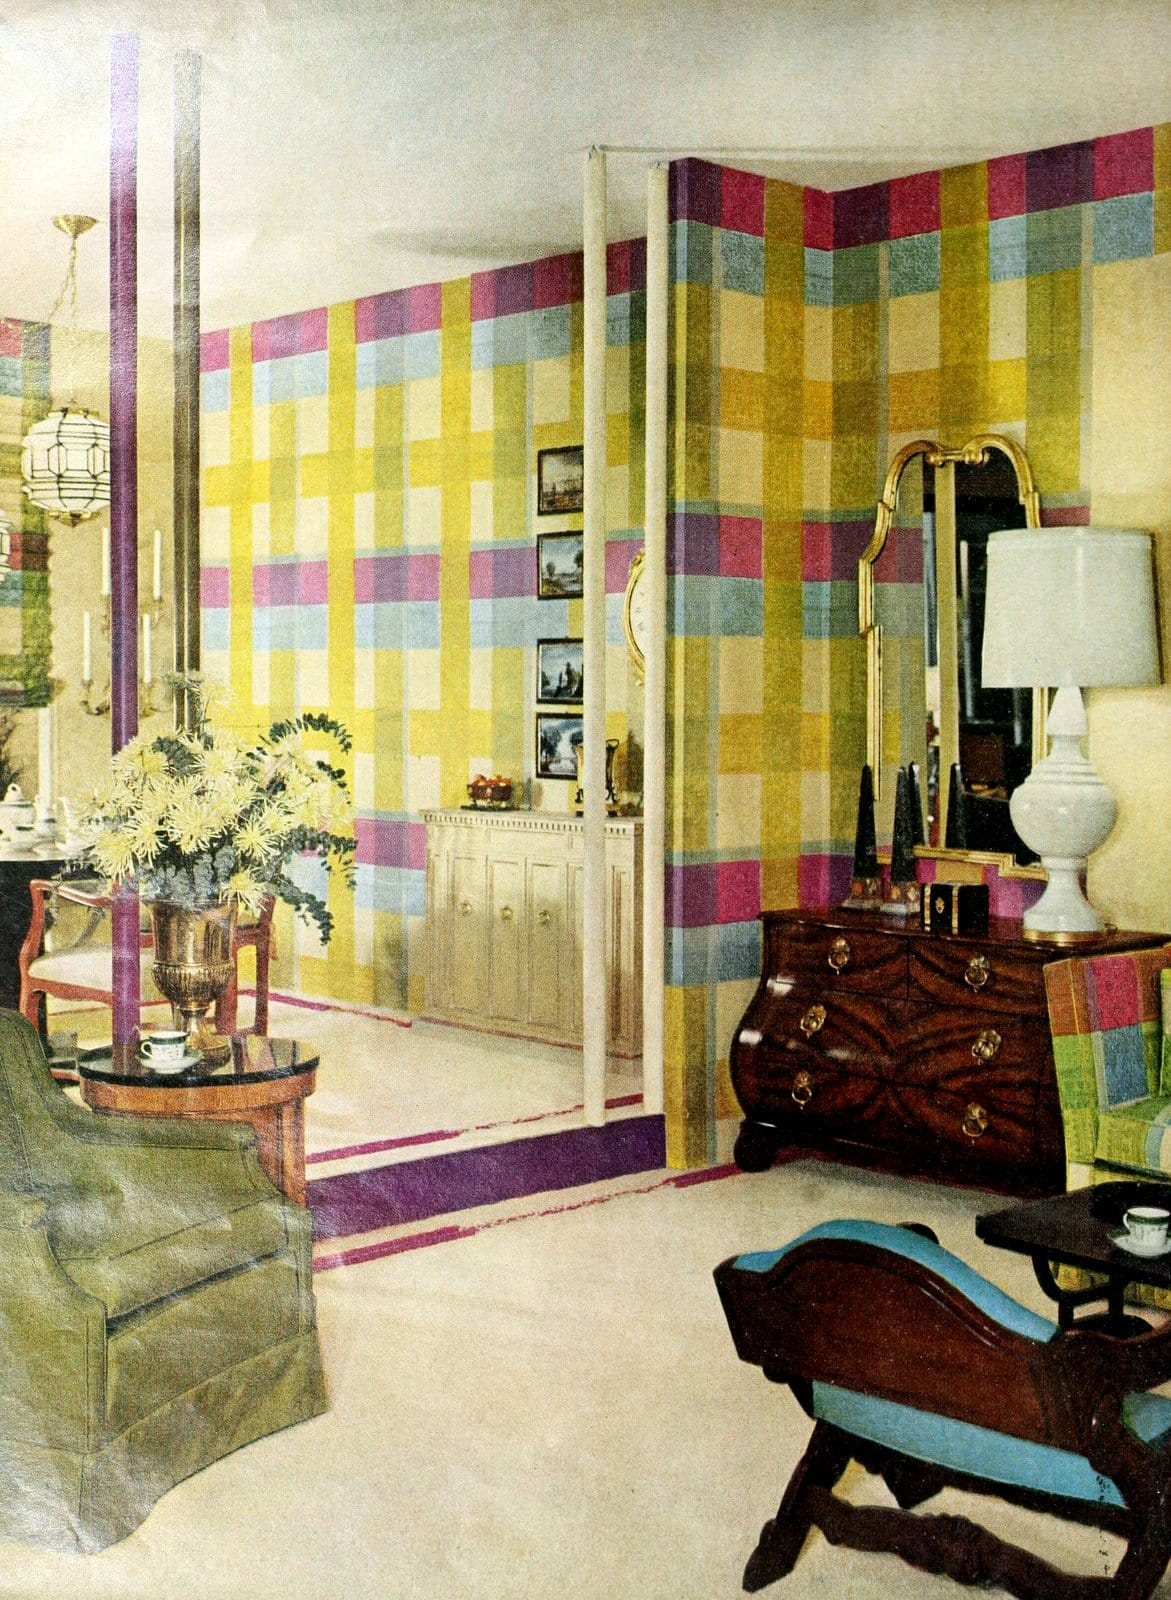 Brightly-colored plaid wall decor in this living-dining room from 1962